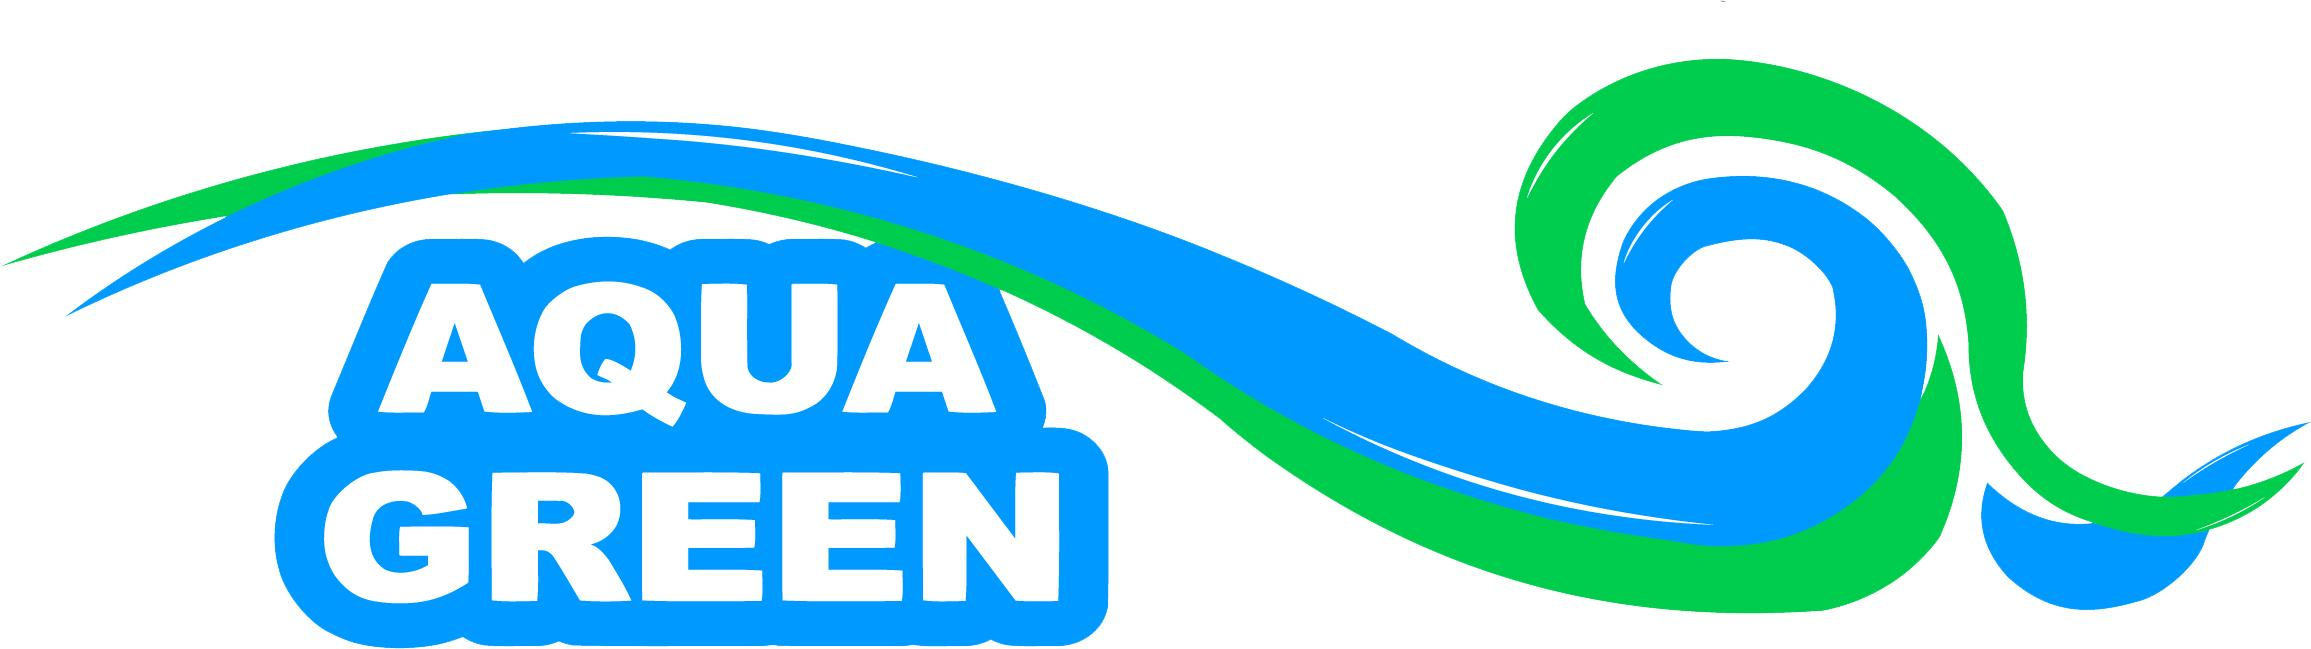 aquagreen logo_1_22